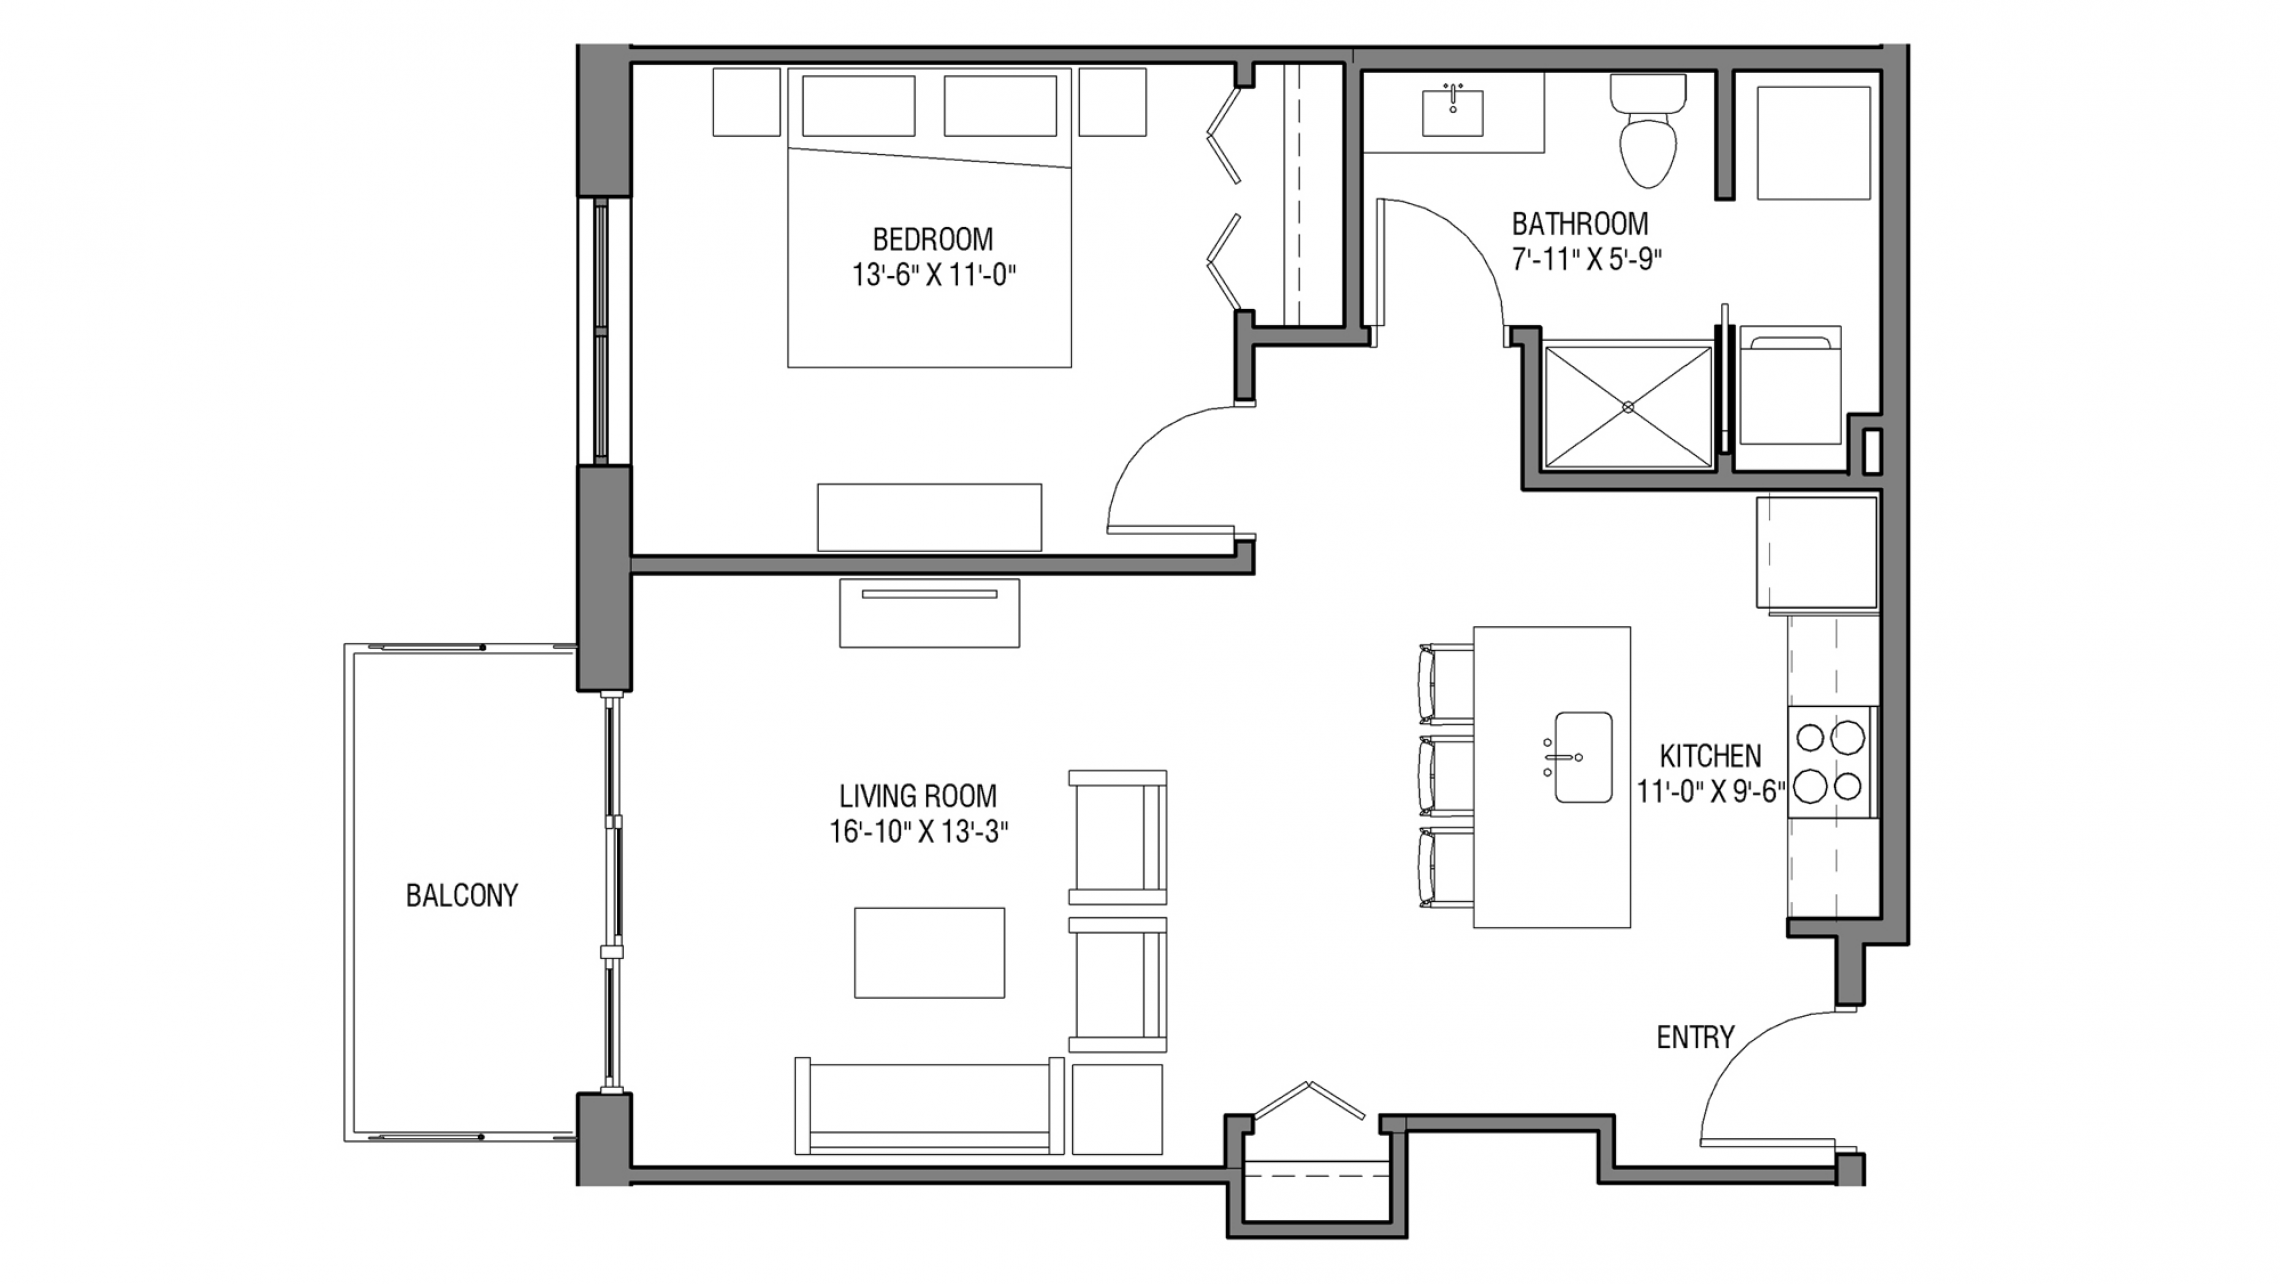 ULI Nine Line 320 - One Bedroom, One Bathroom